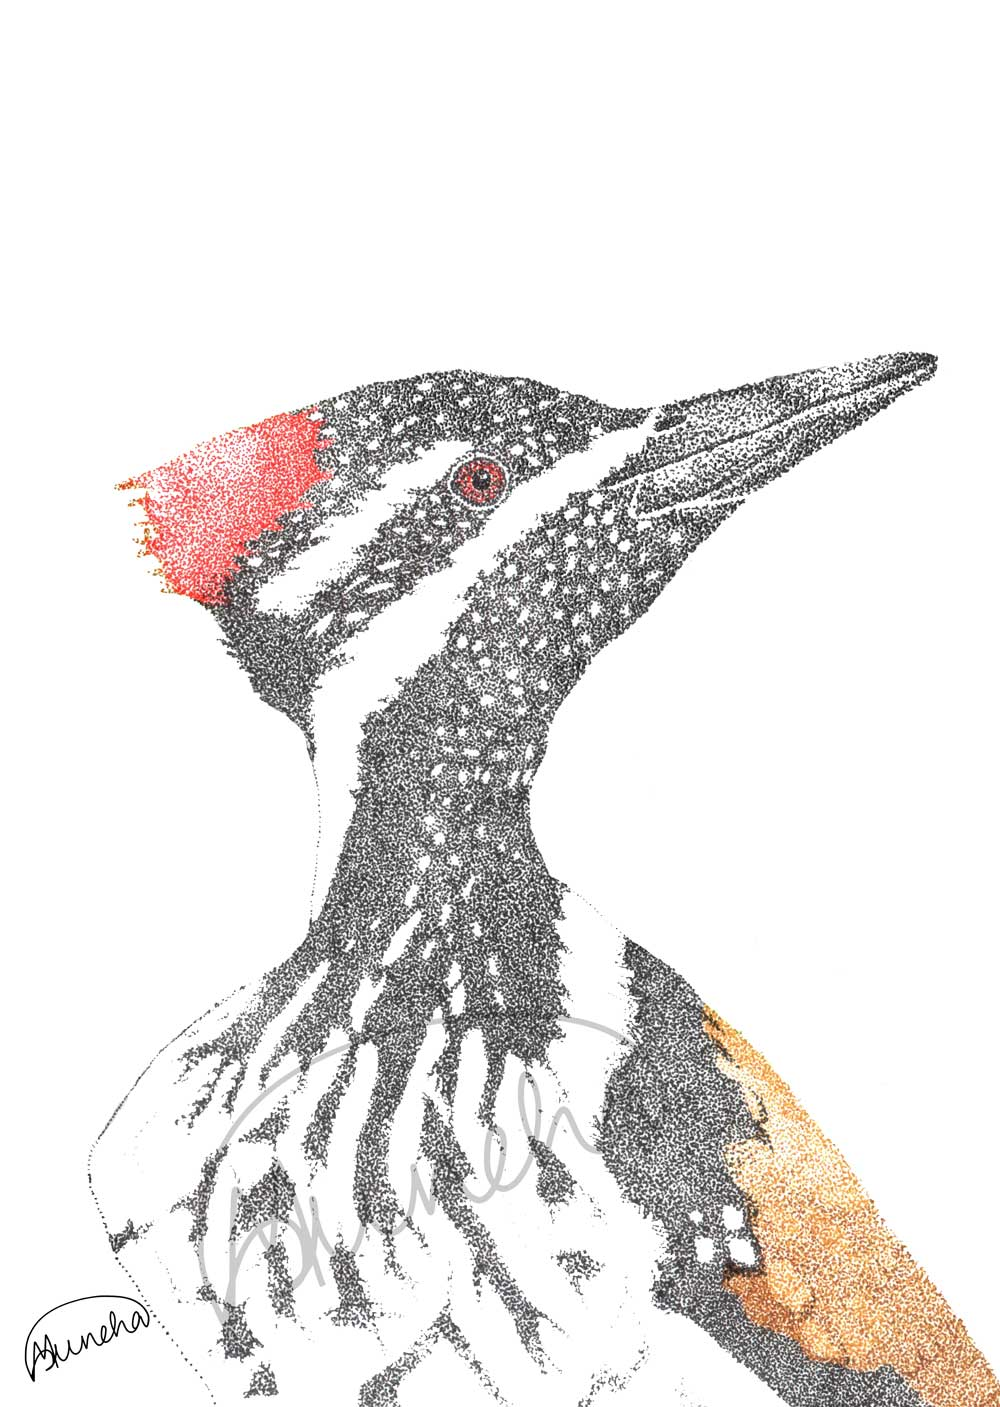 Woodpecker_profile_whiteBG